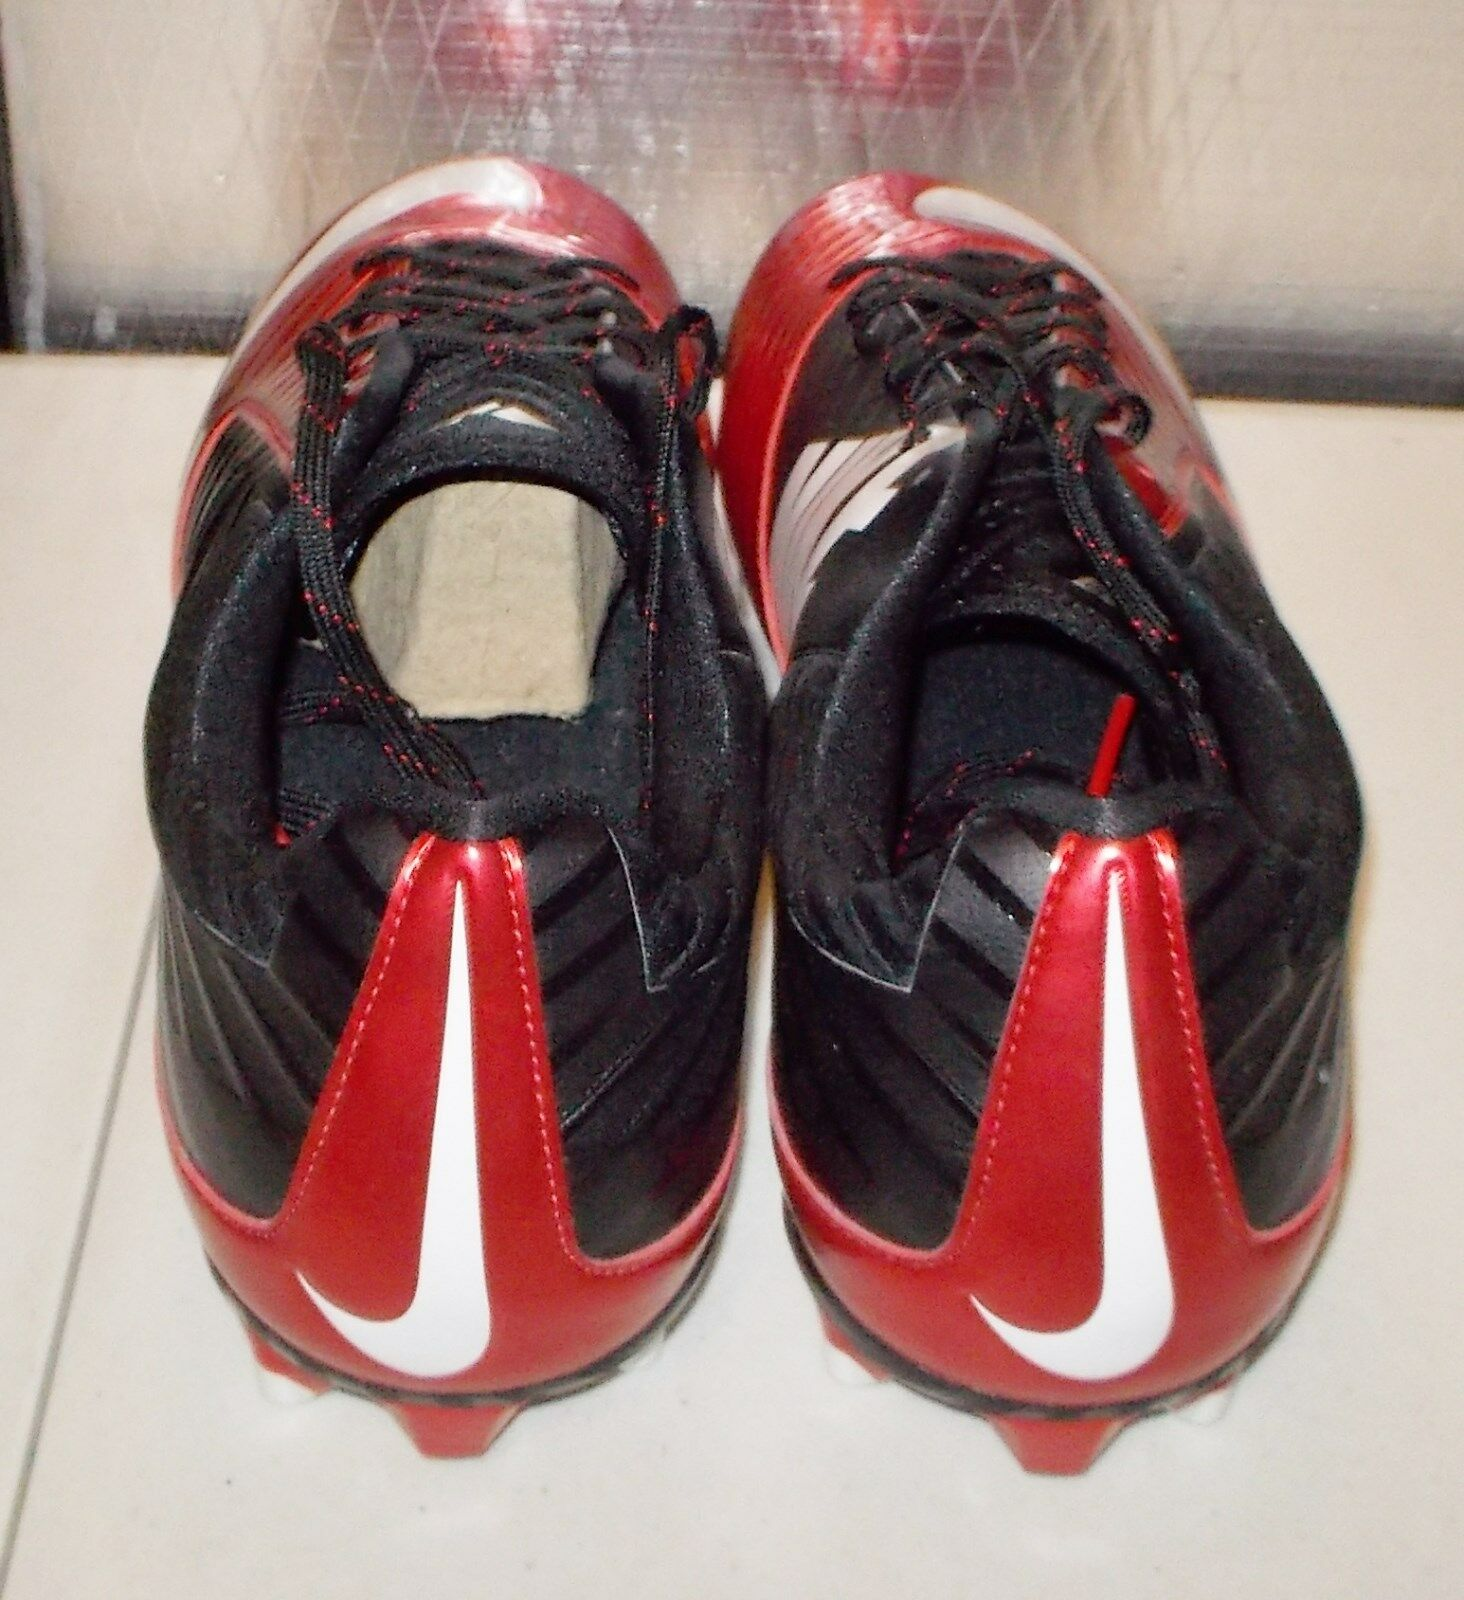 new concept 718be e6512 ... NIKE VAPOR SPEED LOW TD Football Football Football Cleats MENS 15 Game  Red Black 643152 610